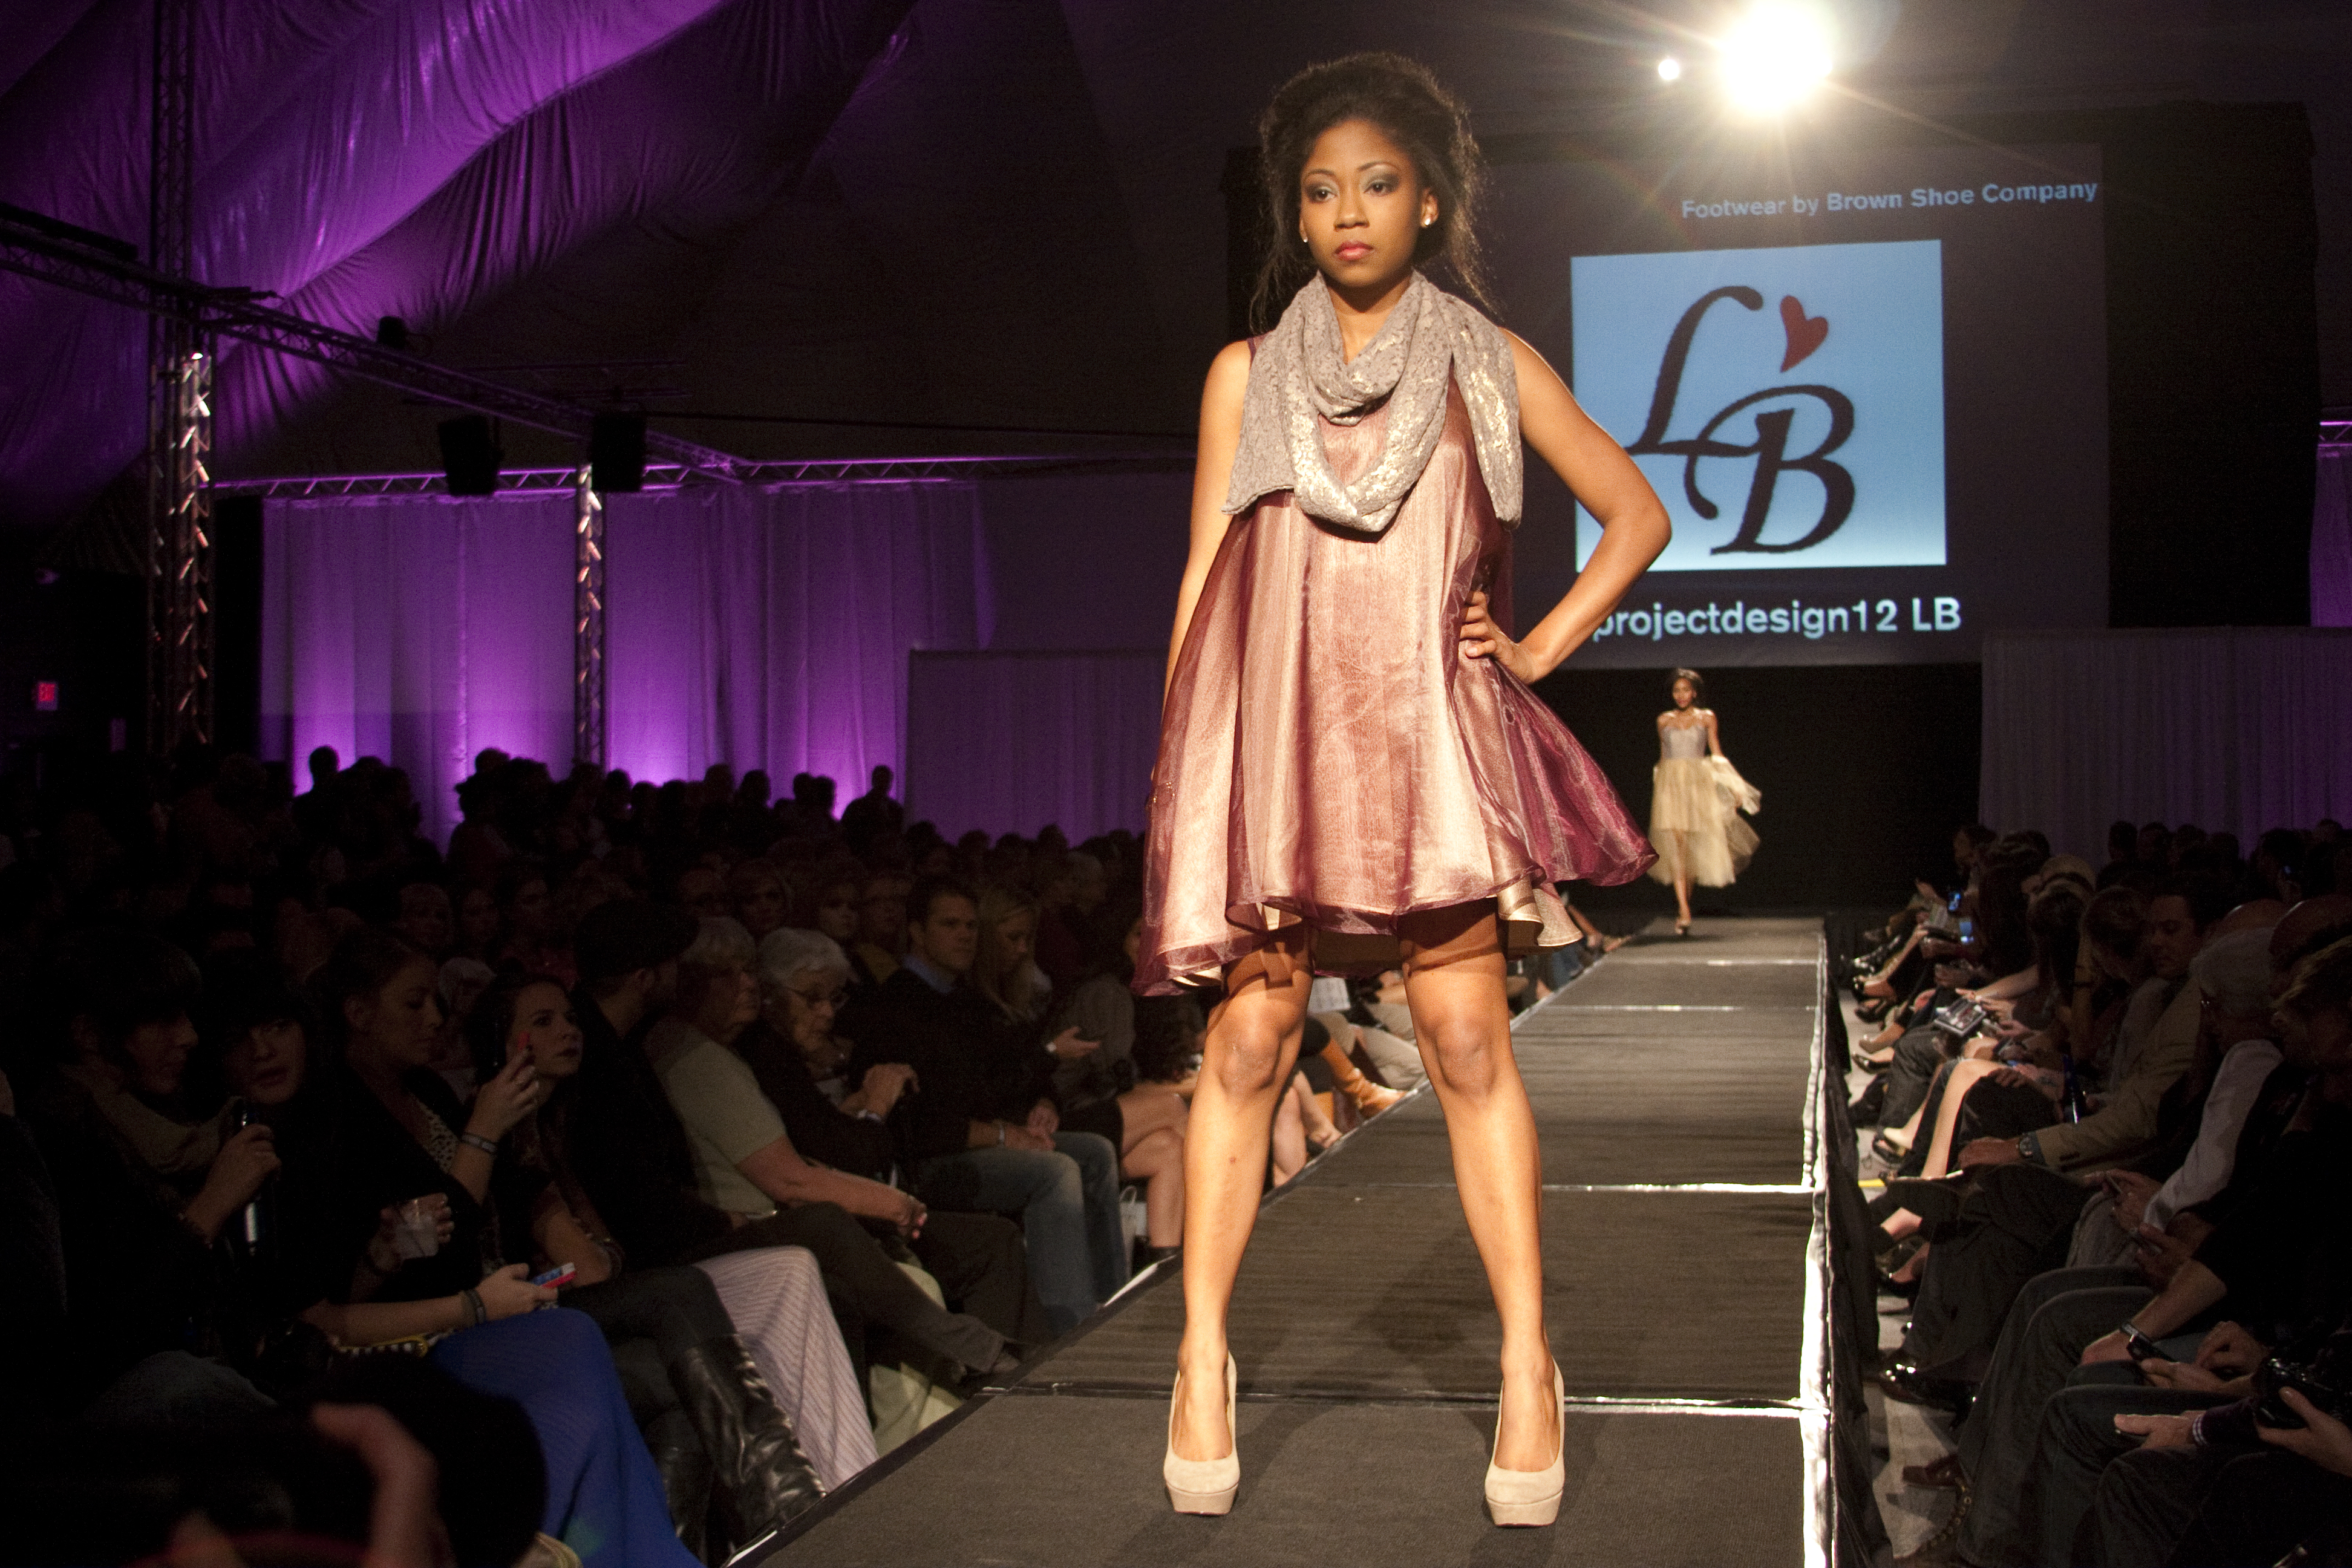 Project: Design! models in the LB by Lauren Bander line wore a multitude of trapeze-style dresses throughout the show. (Noah Berman / Contributor)